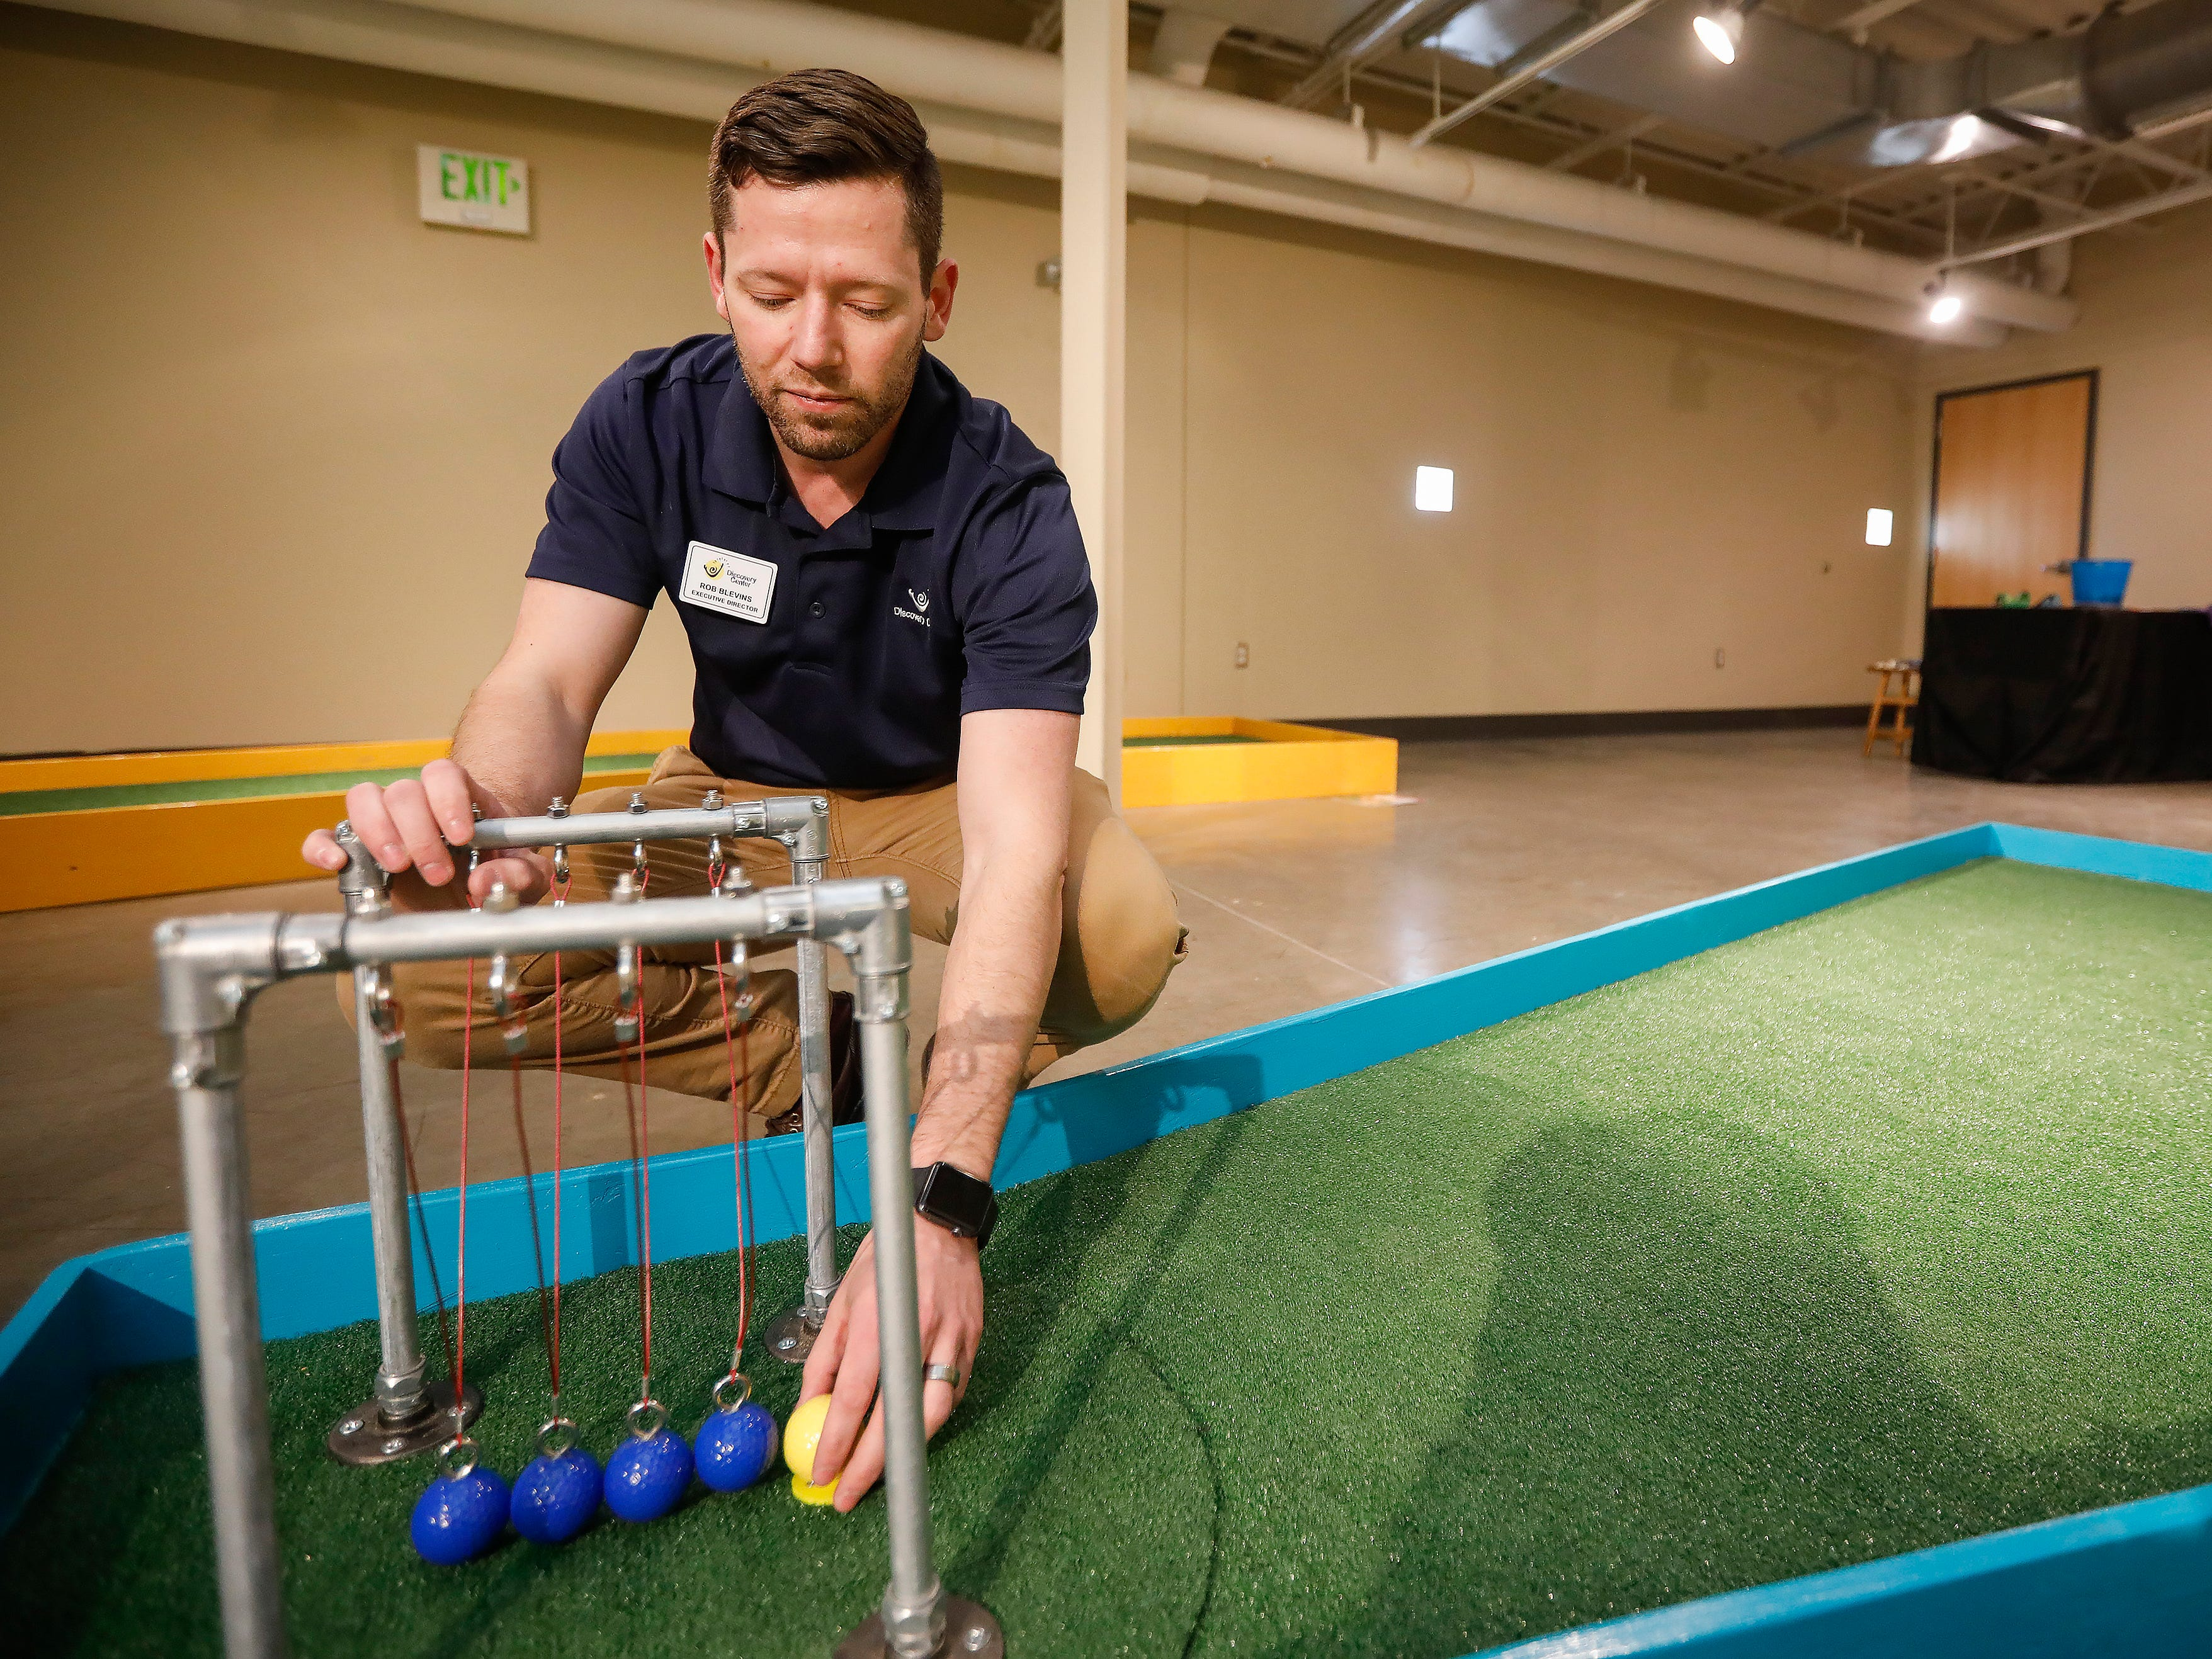 Rob Blevins, executive director at the Discovery Center, sets up the ball in front of a Newton's cradle at the new 9-hole indoor miniature golf course at the science museum. The new exhibit opens to the public on Sunday, March 31, 2019.